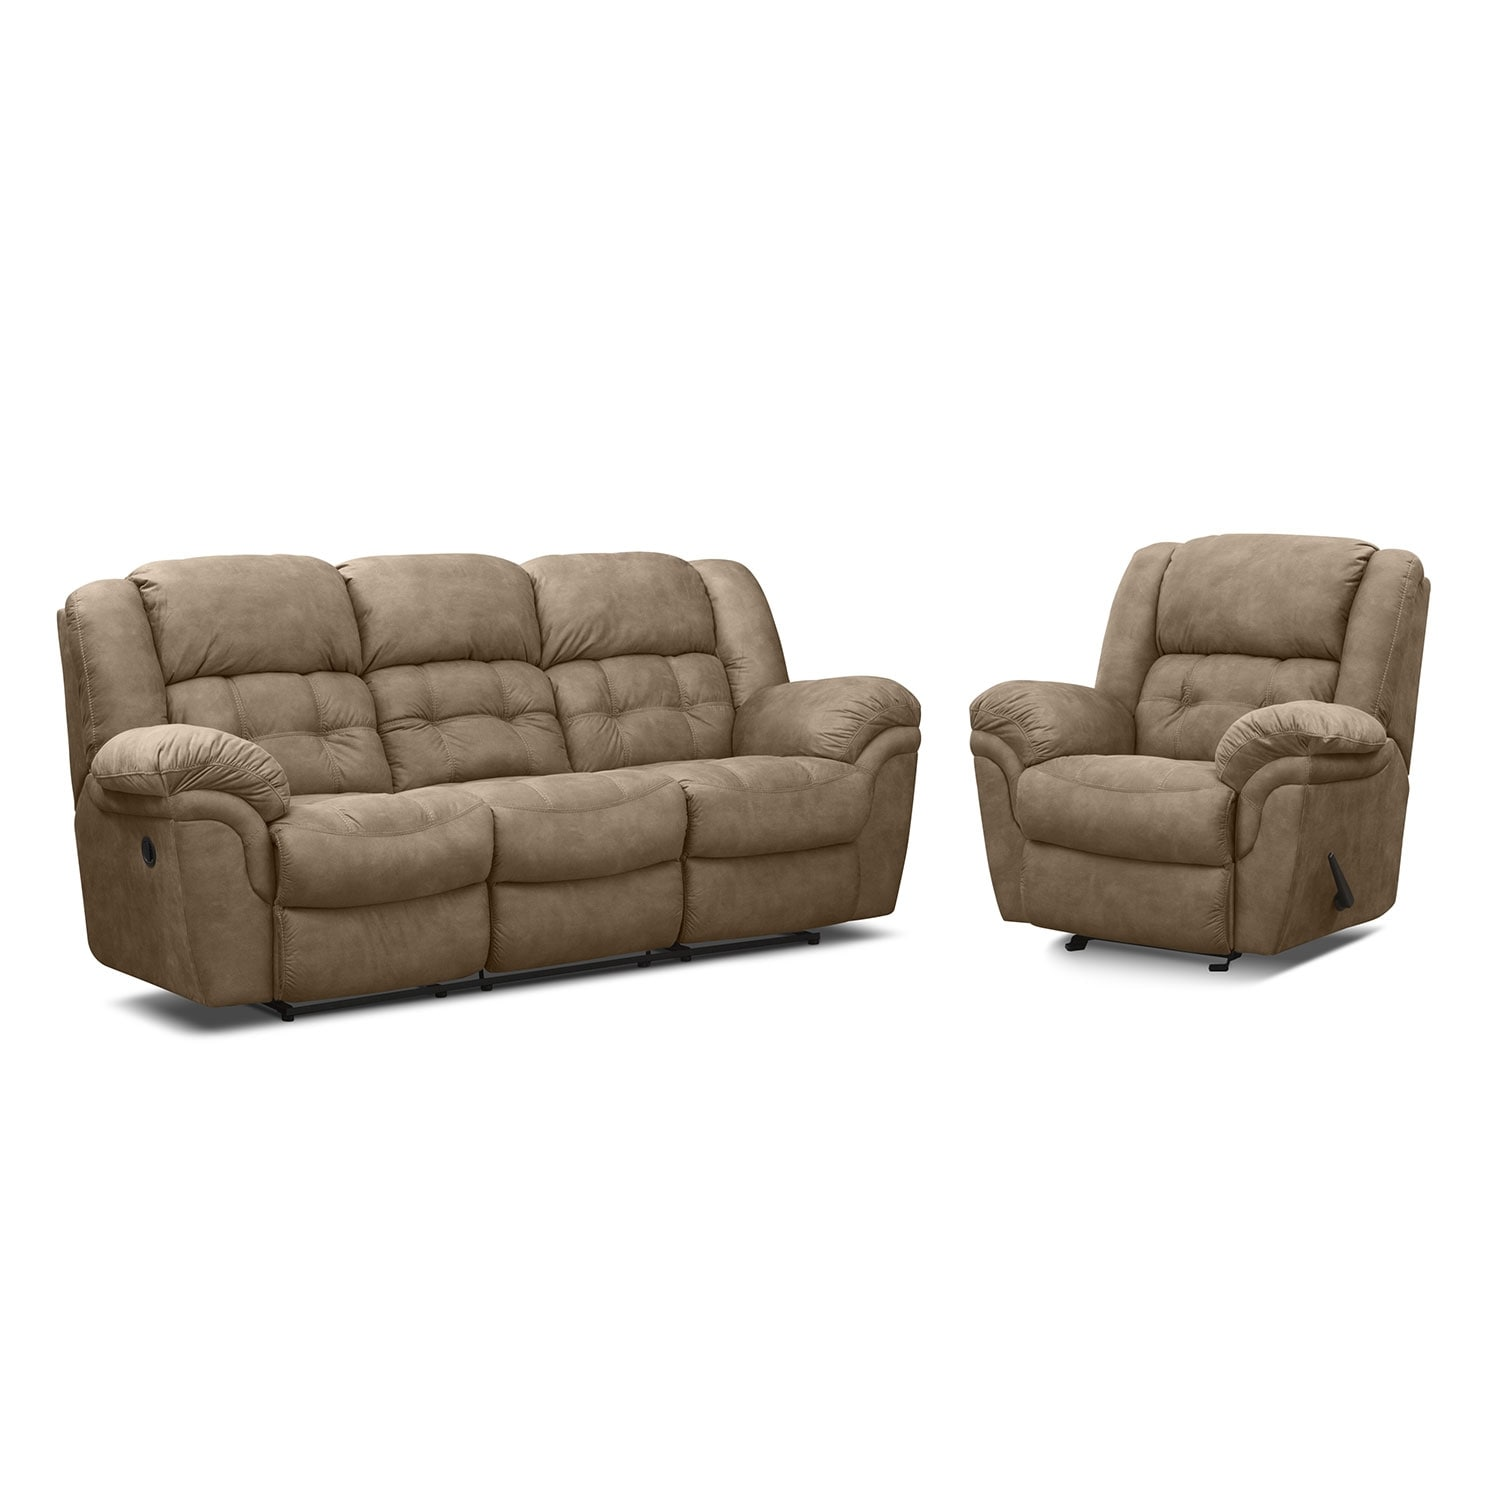 Living Room Furniture - Lancer Manual Reclining Sofa and Glider Recliner - Pecan